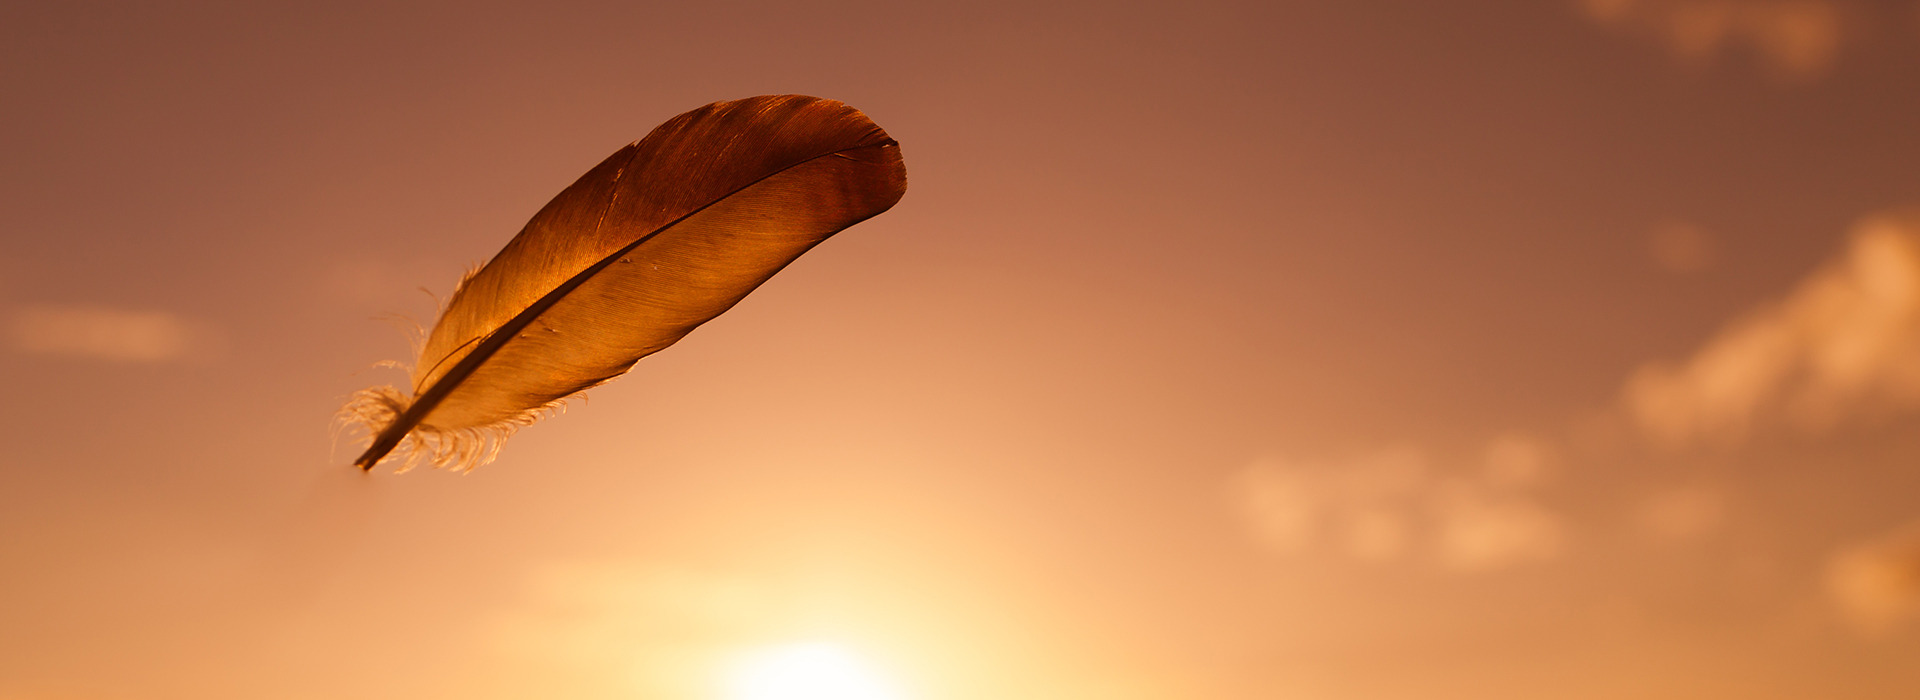 Feather floating in the sky.